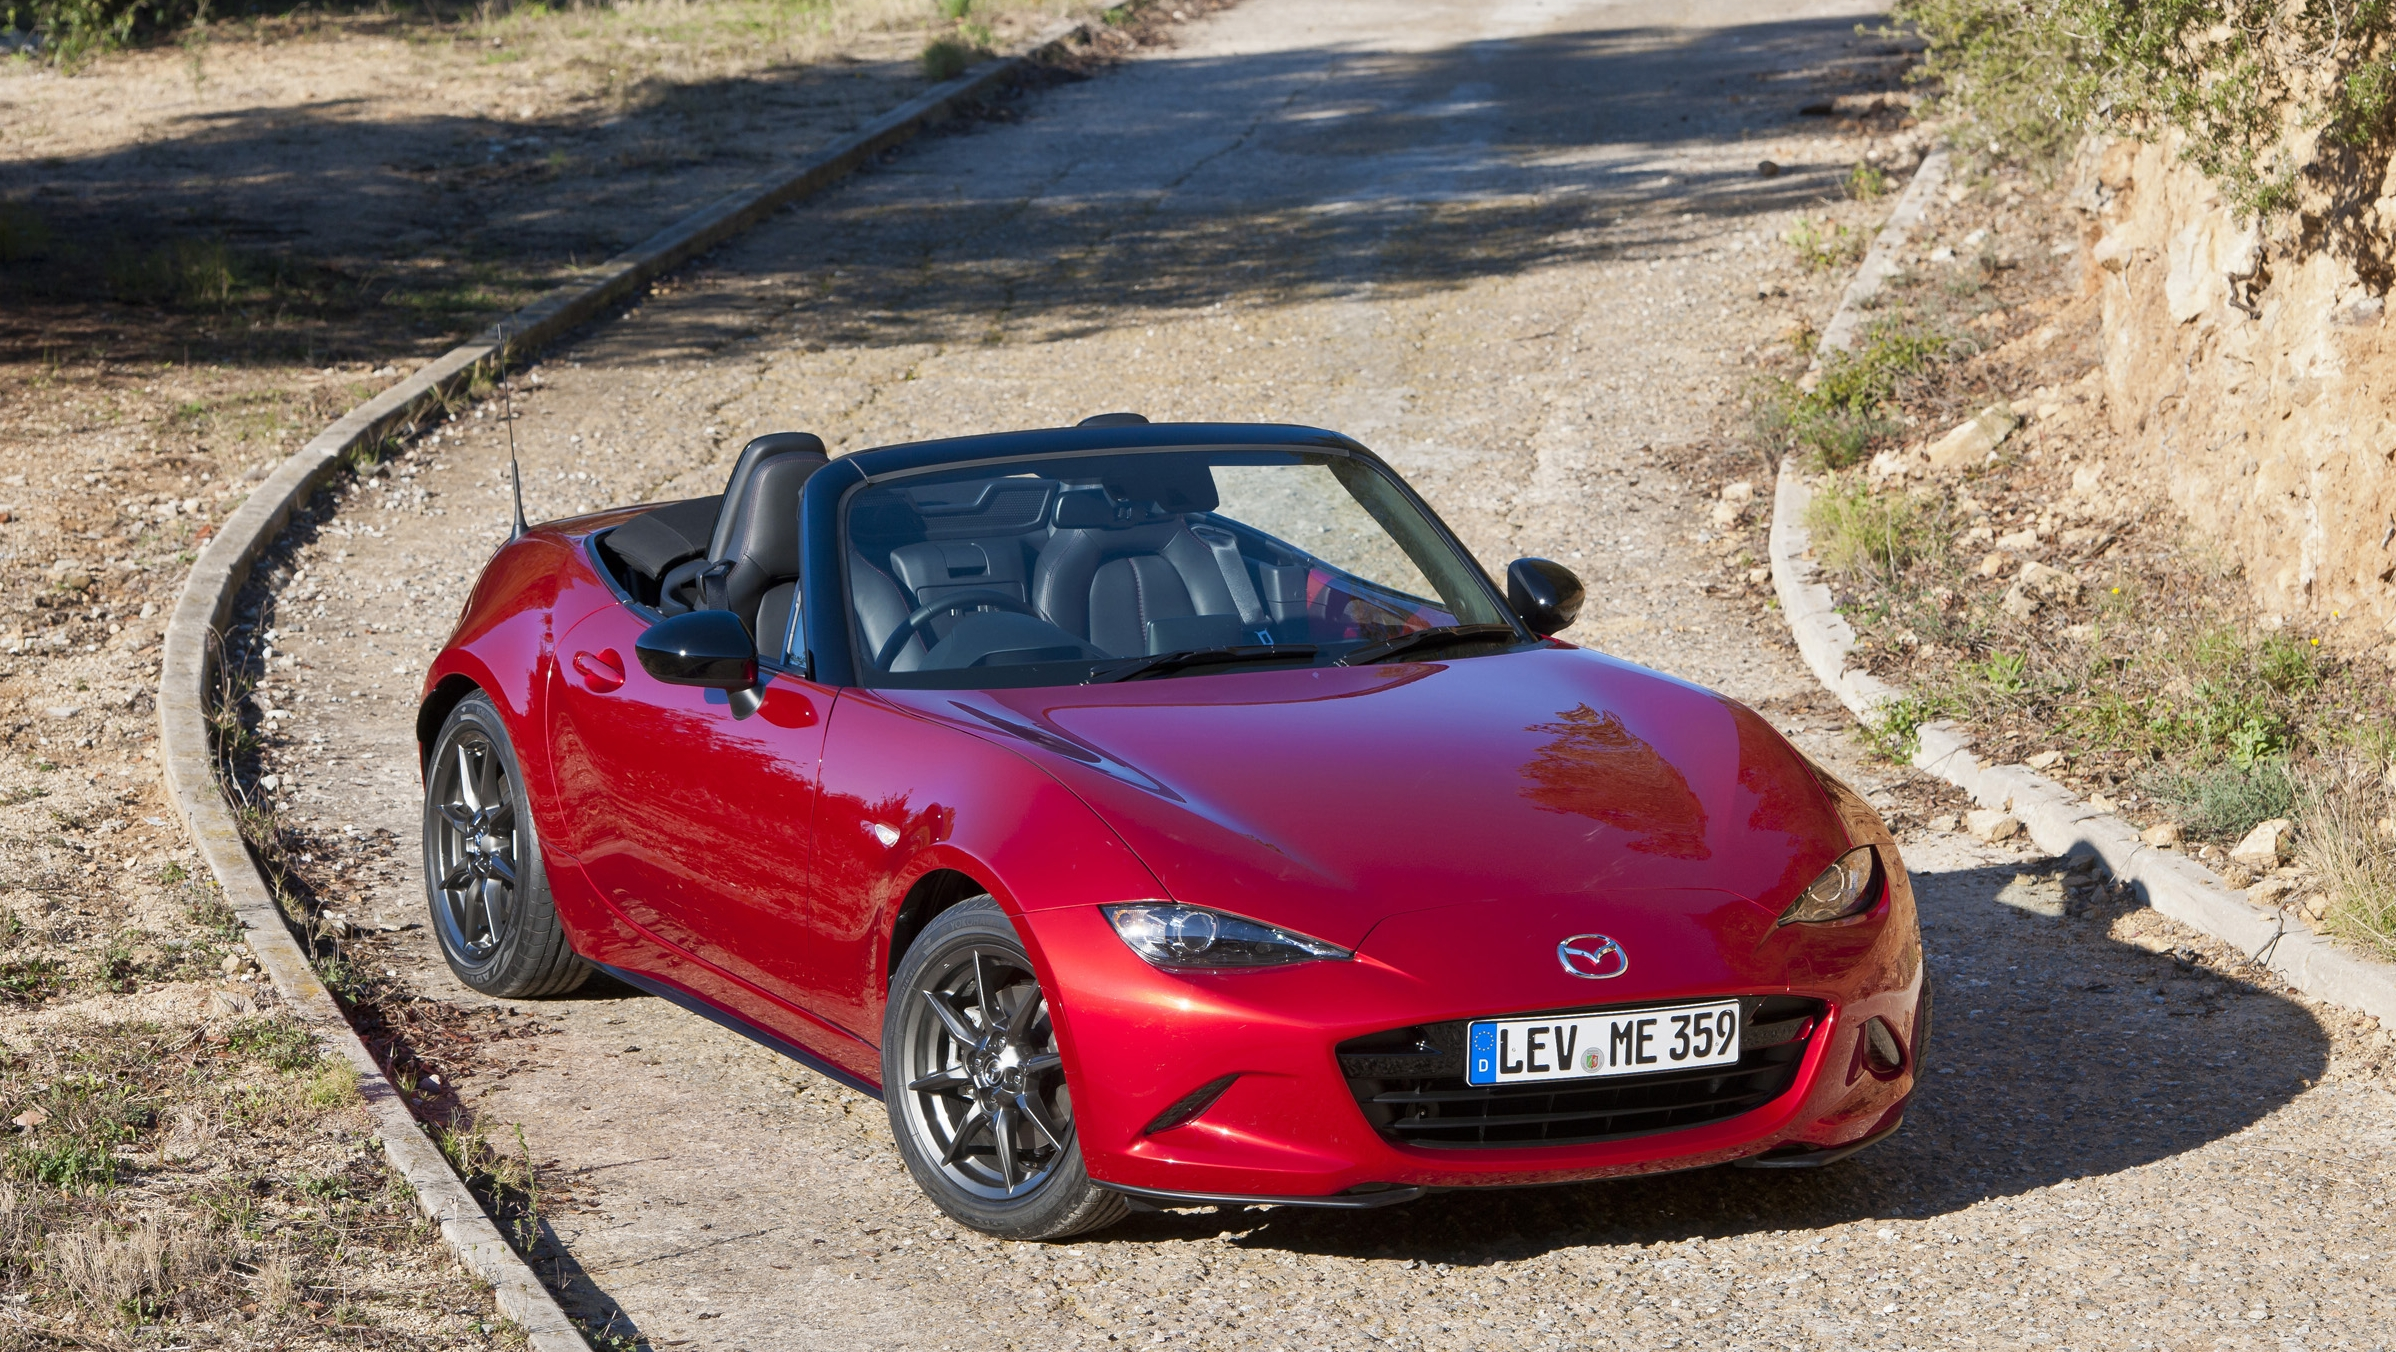 mazda mx 5 won 39 t get a faster version anytime soon picture top speed. Black Bedroom Furniture Sets. Home Design Ideas